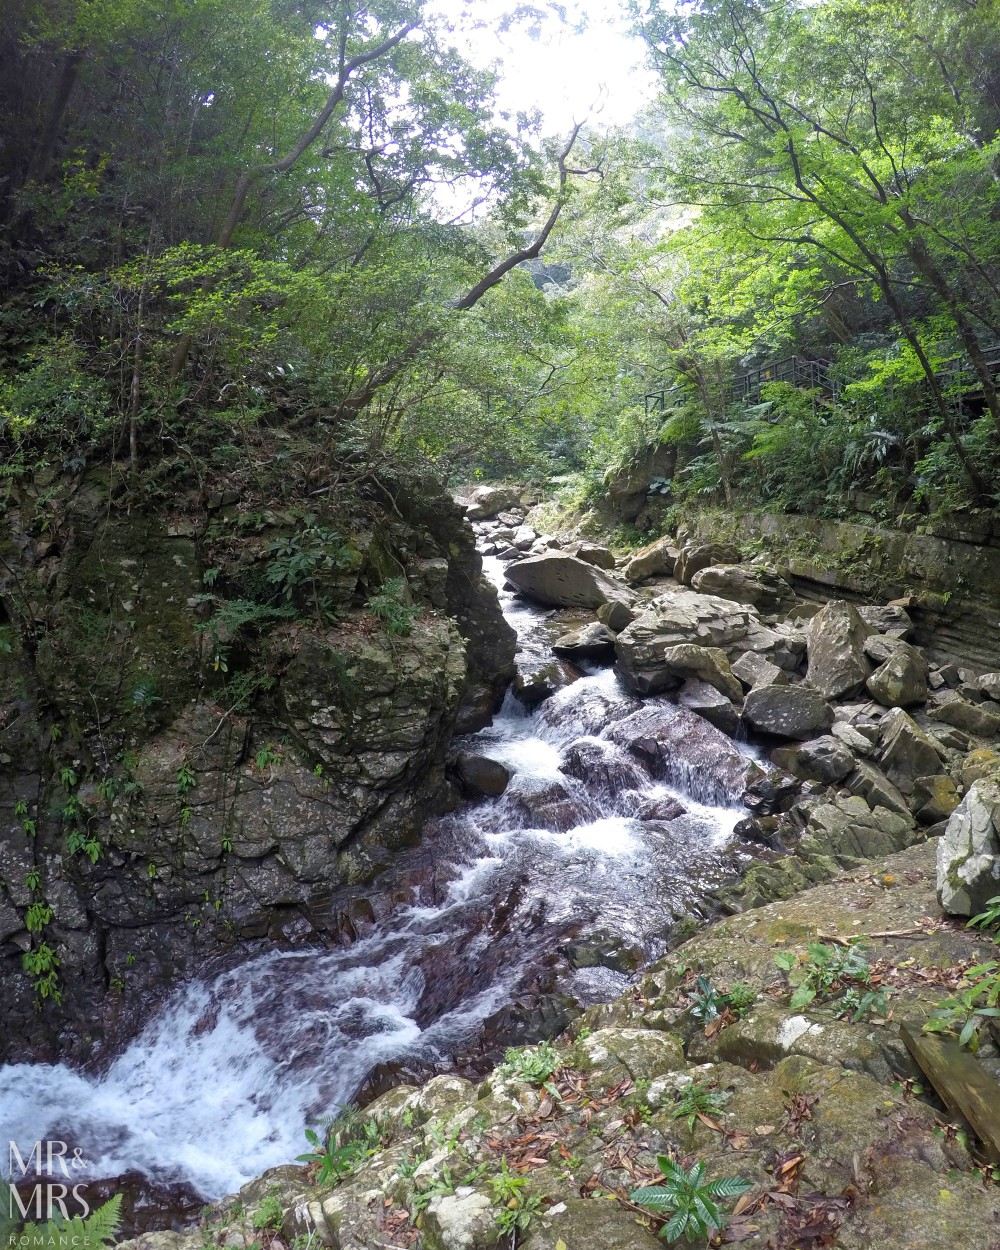 Power Spots, Okinawa, Japan - Mr & Mrs Romance - Hiji Waterfall river rapids